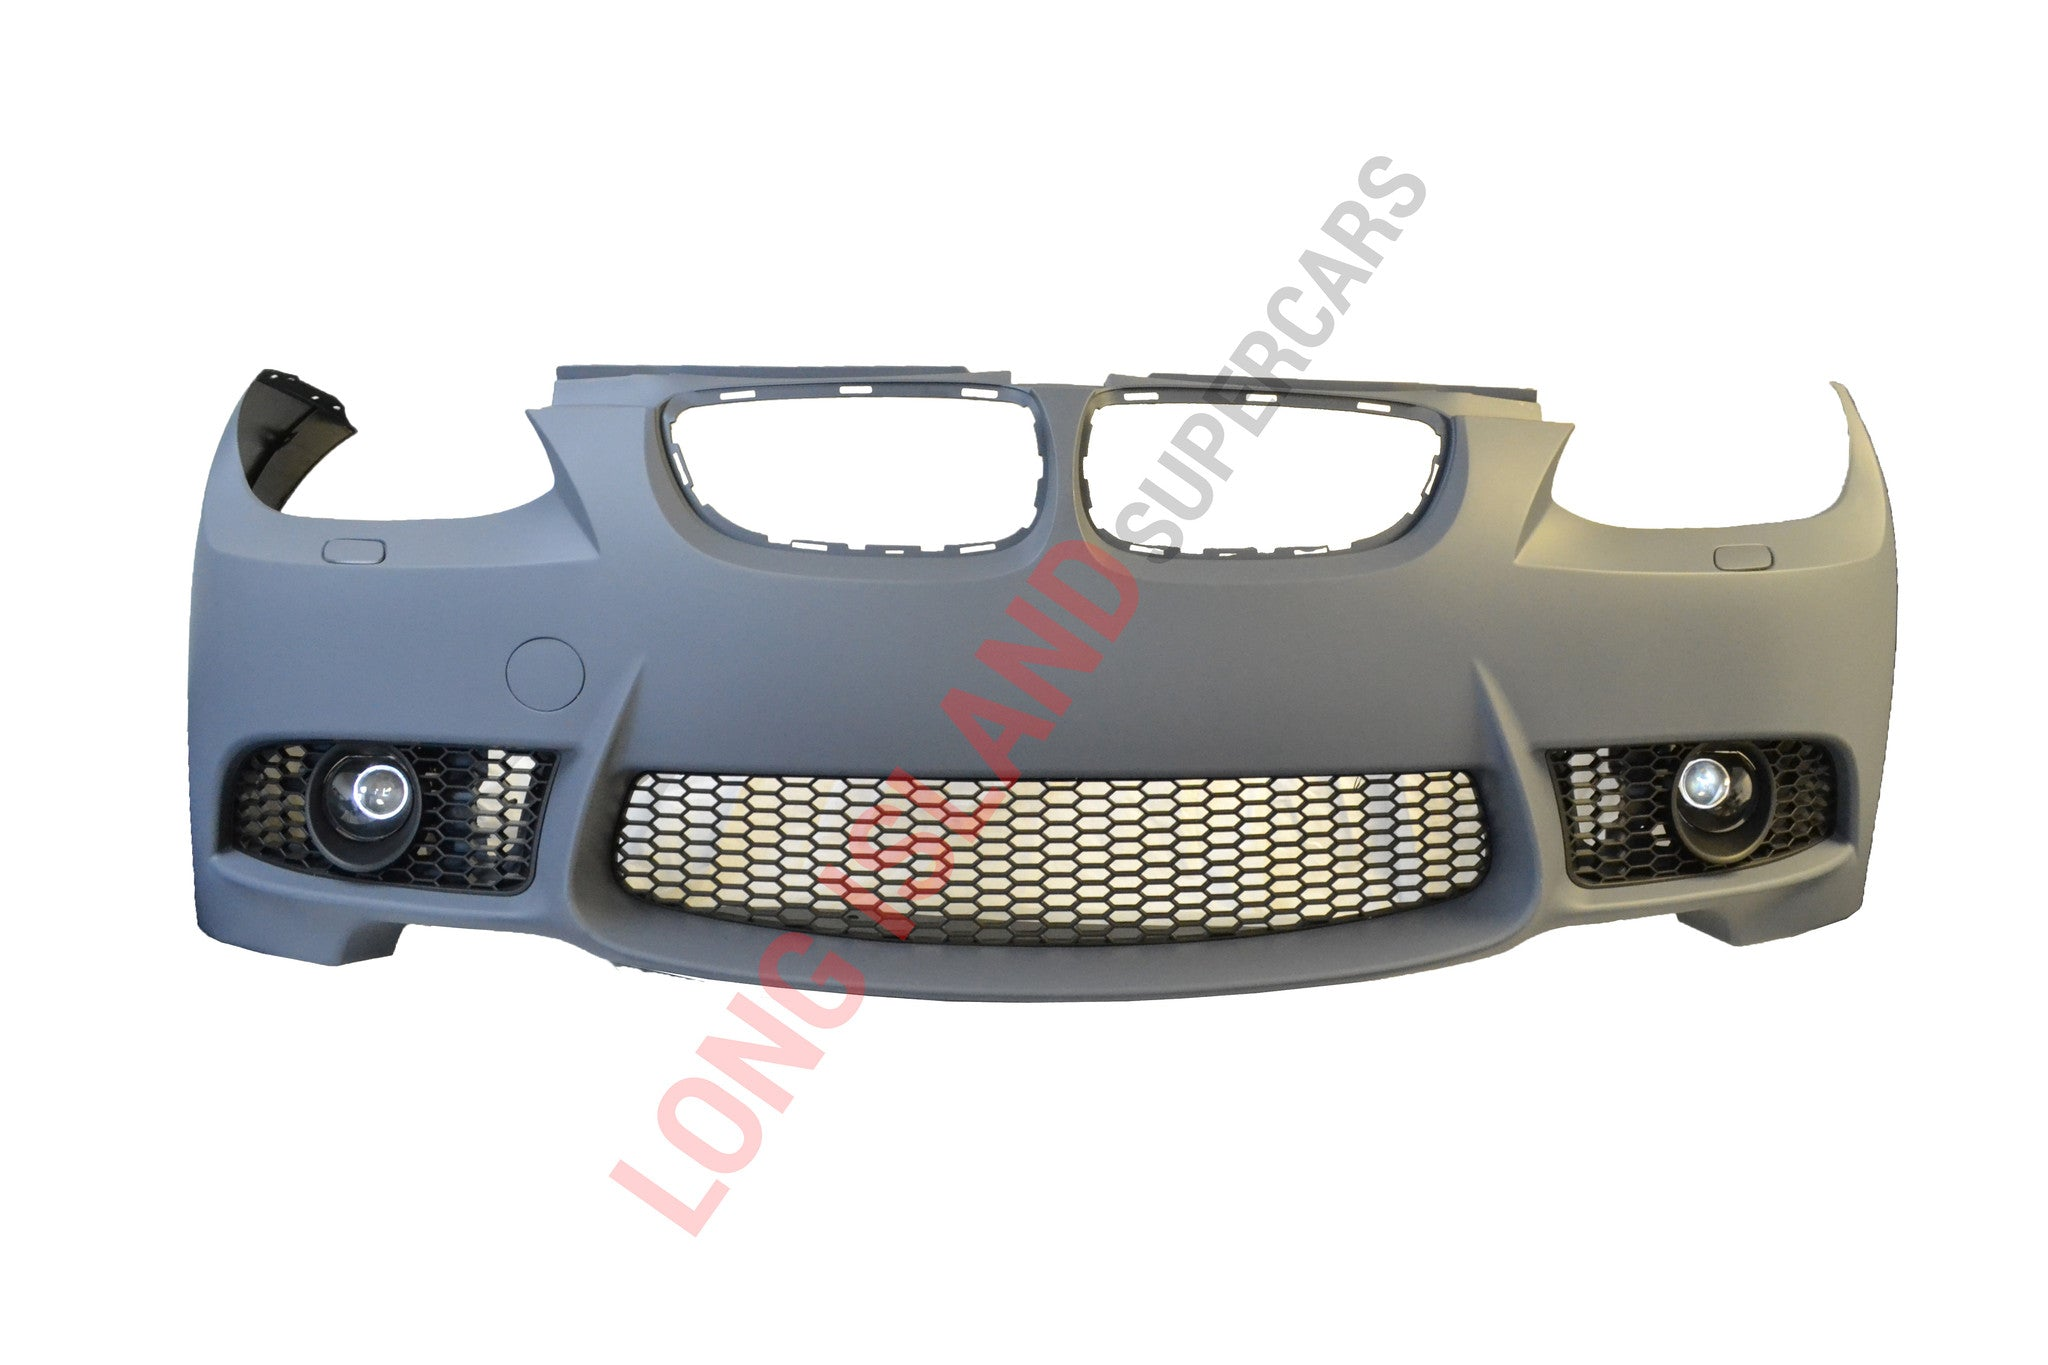 E92 BMW M3 Front Bumper Conversion with Fog Lights and lower grilles (Without PDC sensor holes) - Fits 2 Door 2007-2010 BMW 335i 335xi 328i 328xi